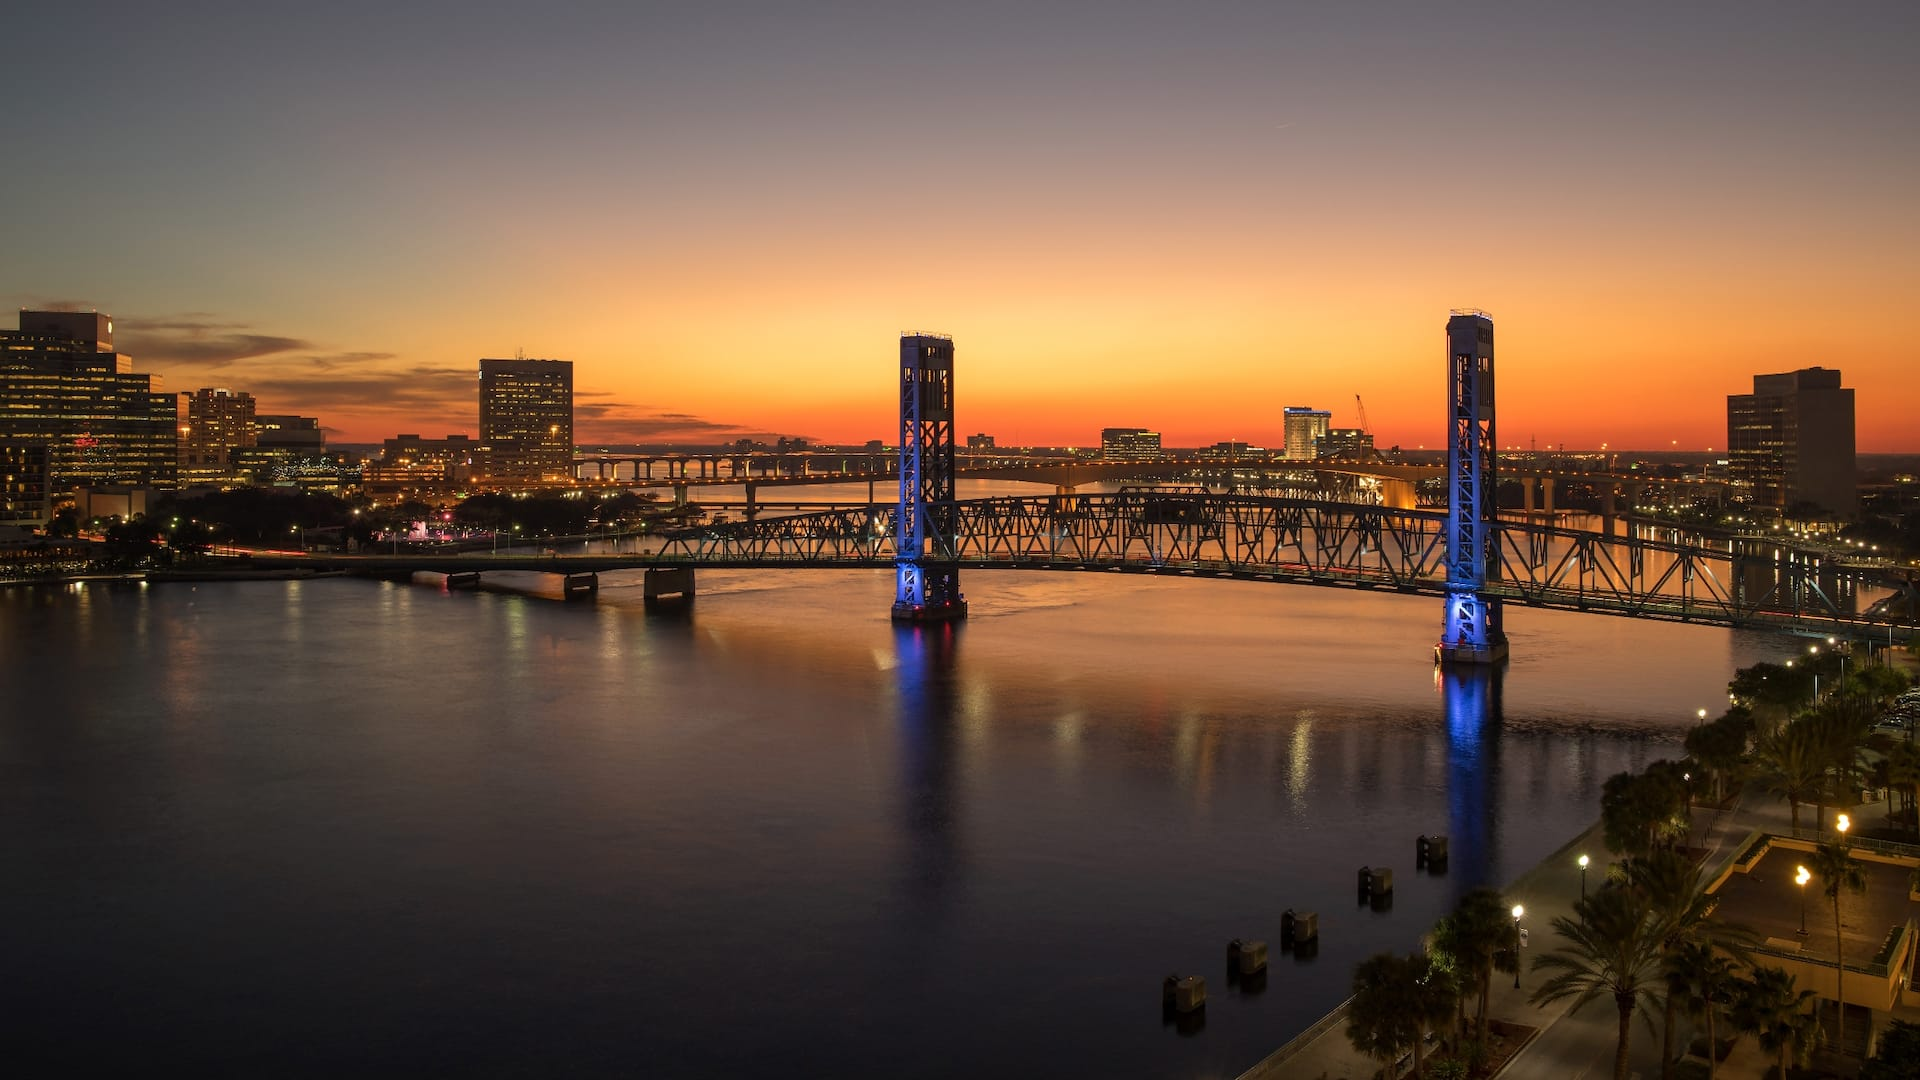 Sunset on the downtown Jacksonville riverfront